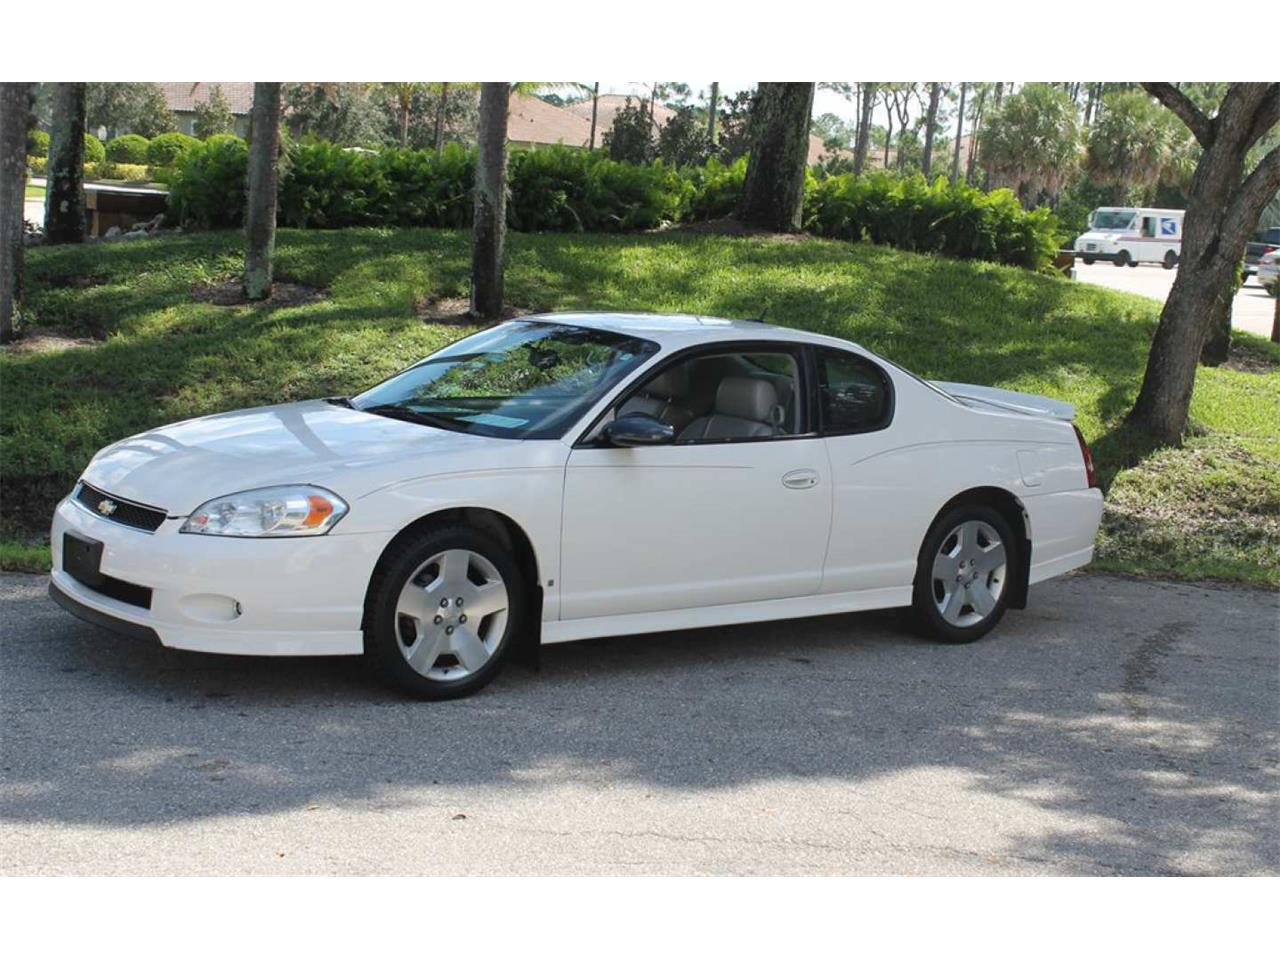 2007 chevrolet monte carlo ss for sale classiccars com cc 1147946 2017 Chevrolet Monte Carlo SS